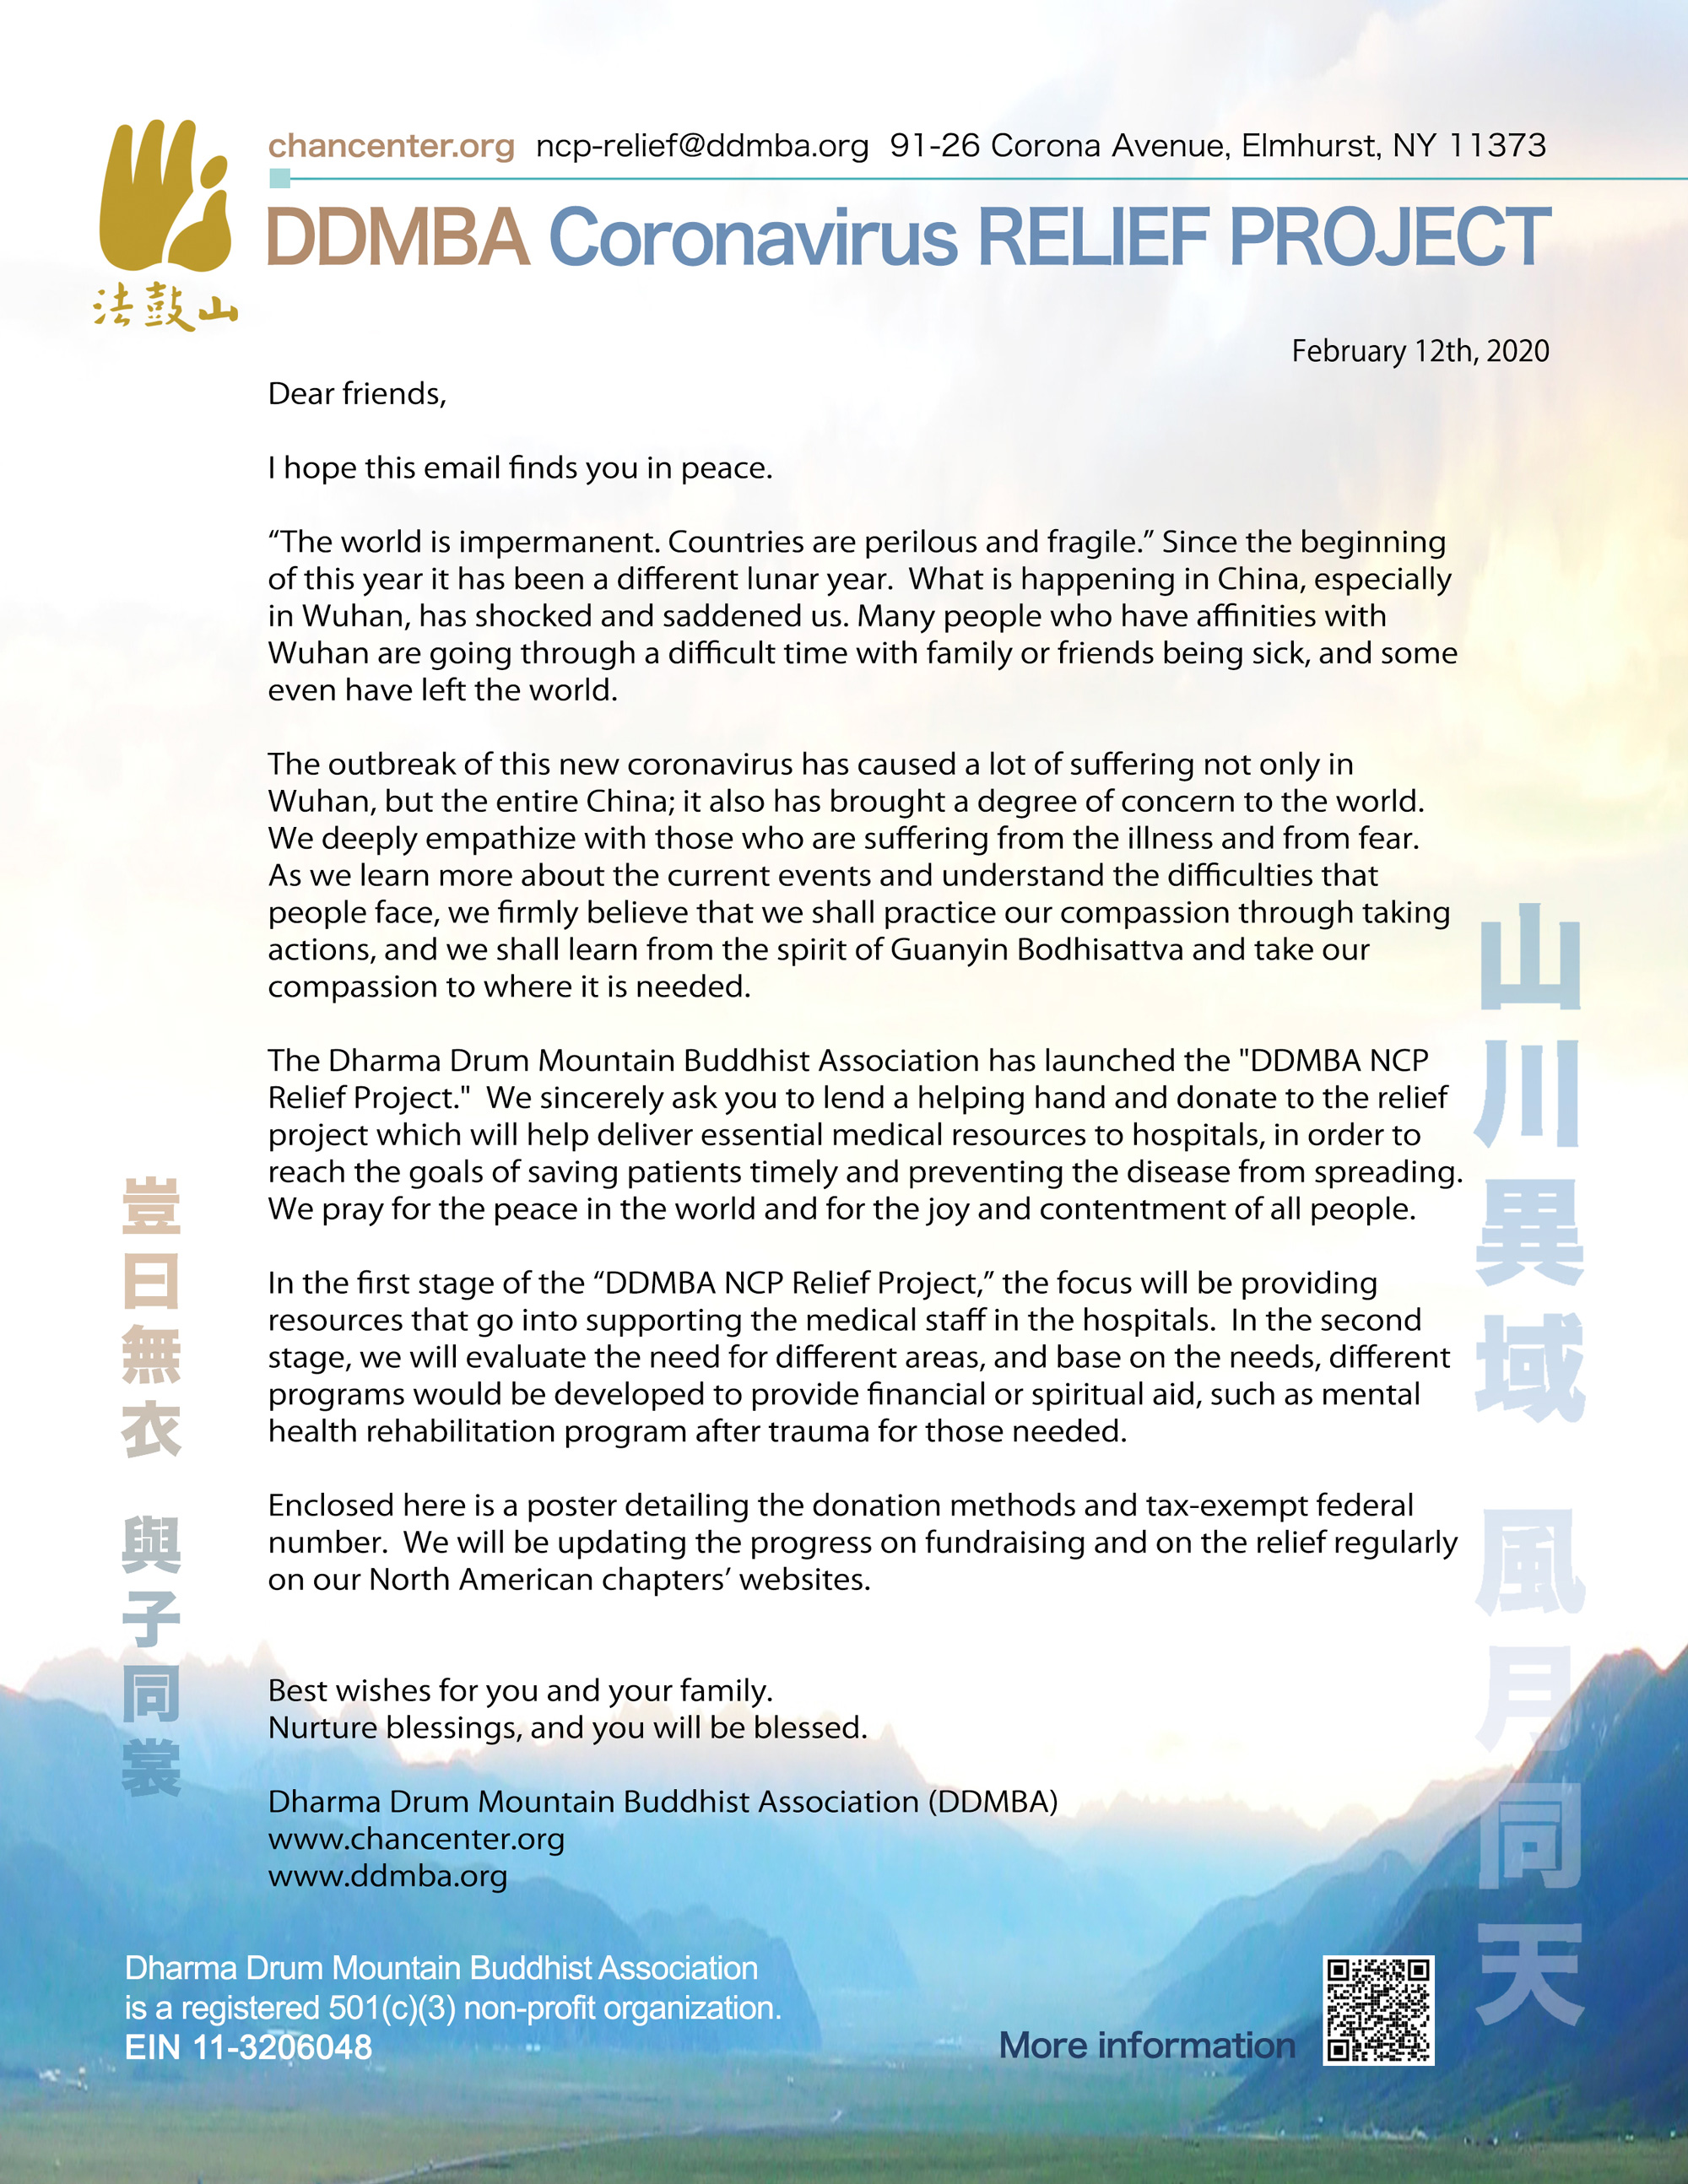 DDMBA NCP Relief Project - 2020 Coronavirus in Wuhan